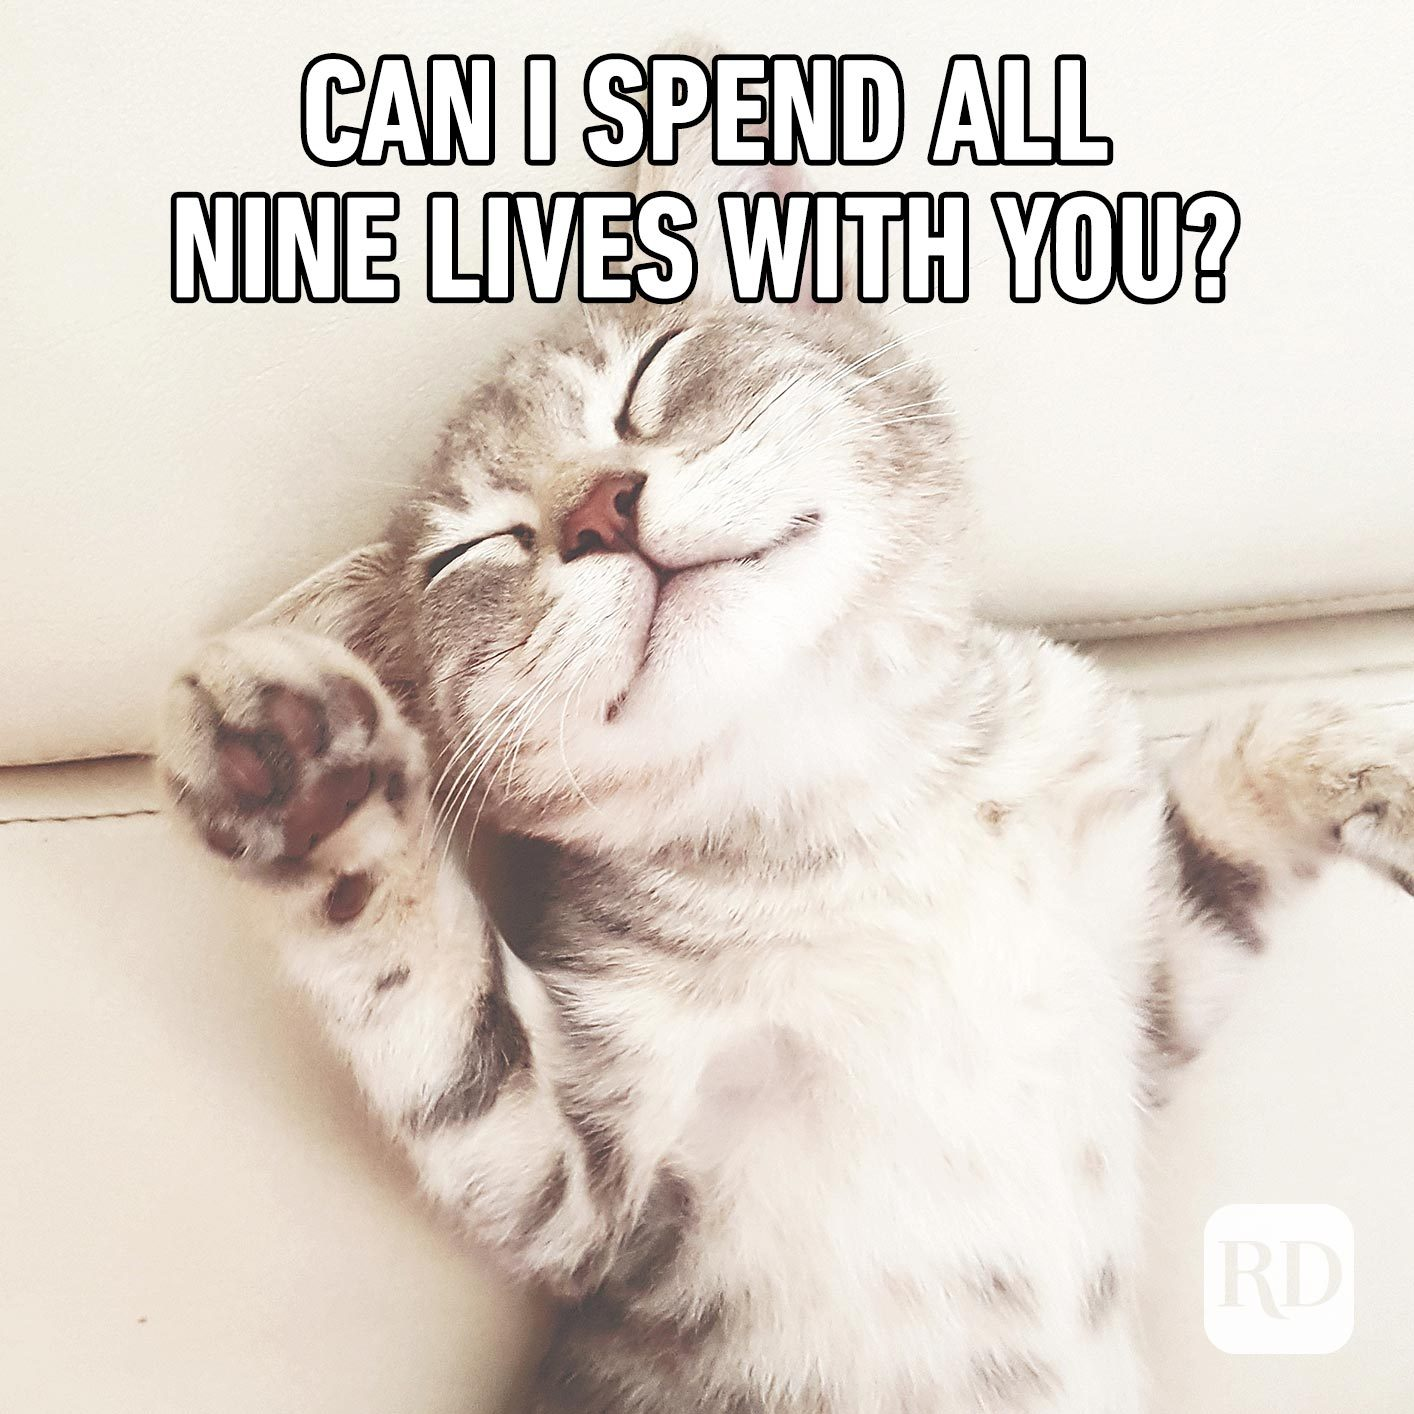 Sleeping cat. Meme text: Can I spend all nine lives with you?